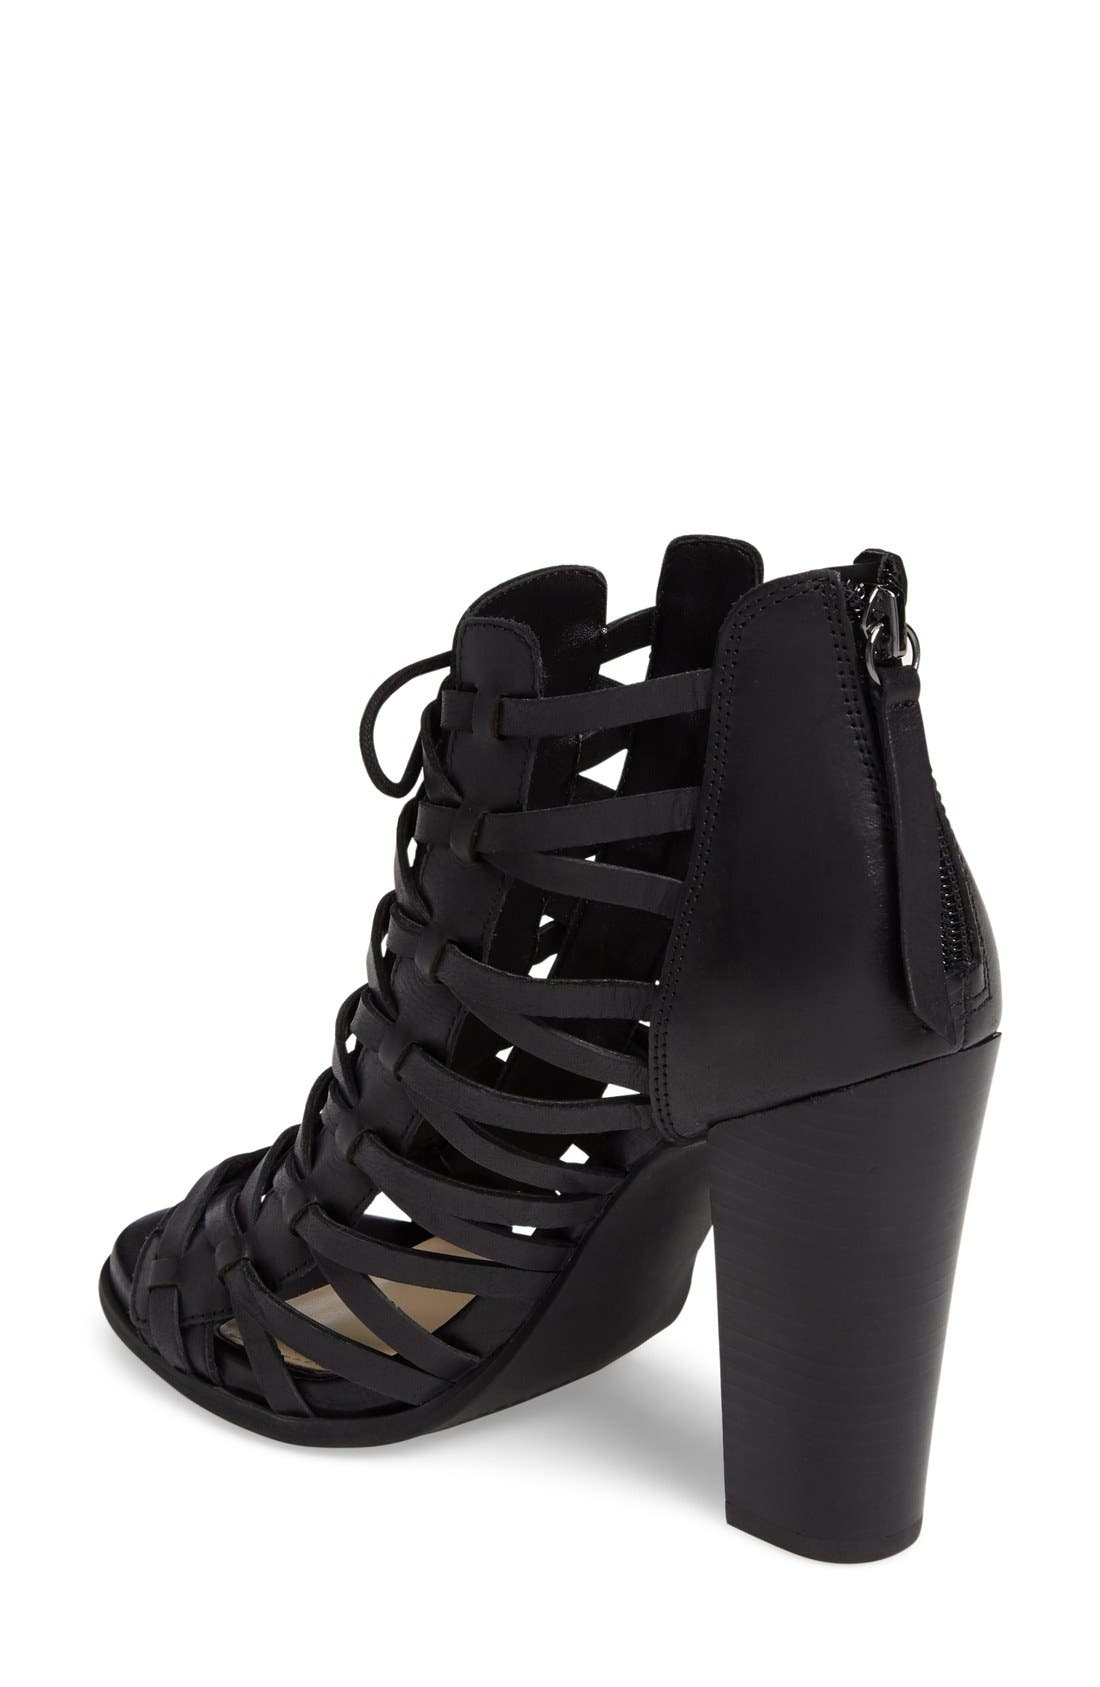 JESSICA SIMPSON,                             Riana Woven Leather Cage Sandal,                             Alternate thumbnail 5, color,                             001